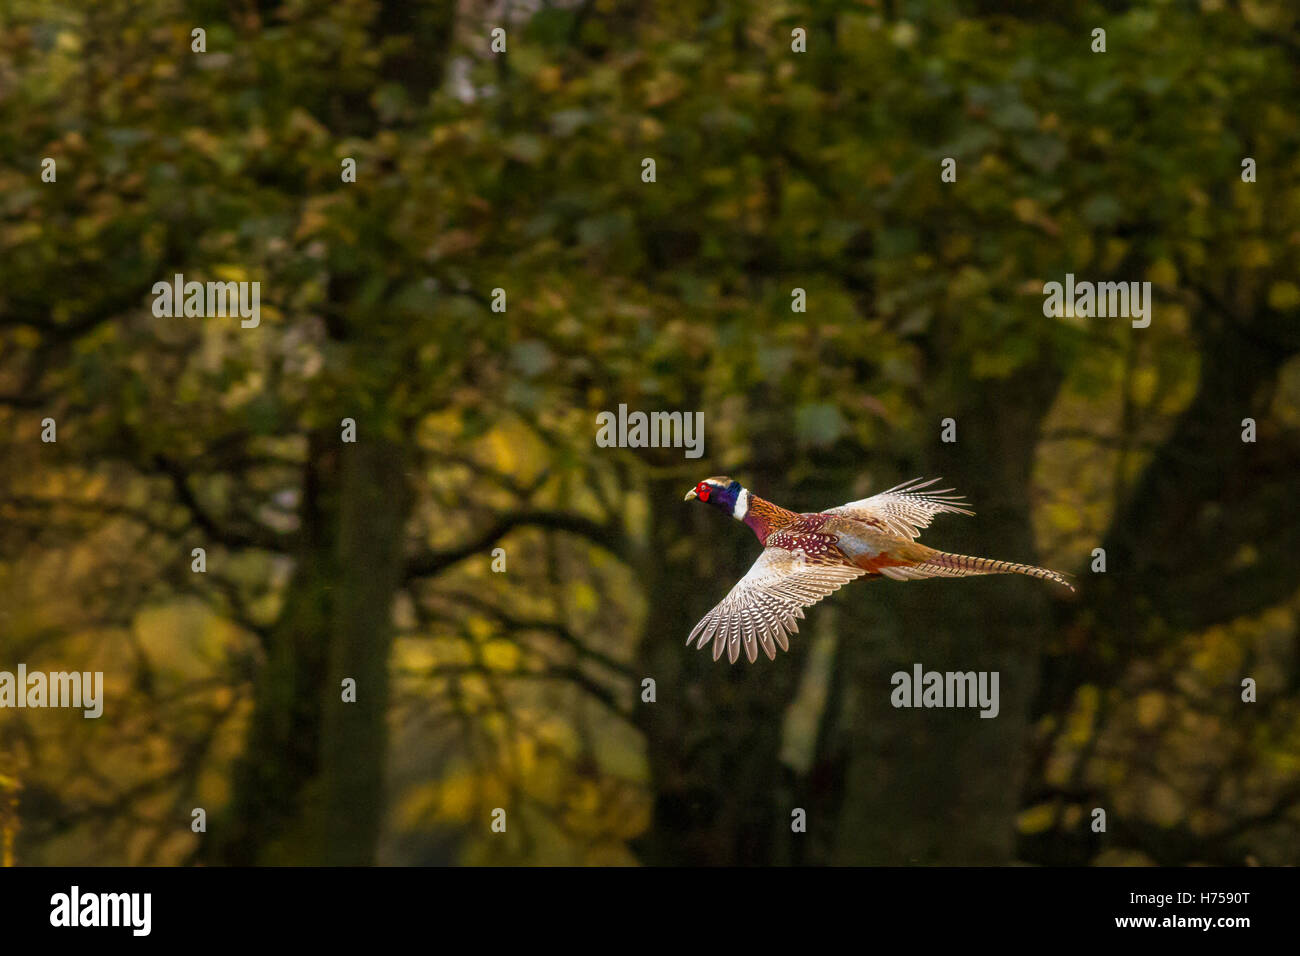 Pheasant in flight by a Yorkshire woodland, Burley-in-Wharfedale, Yorkshire, UK - Stock Image